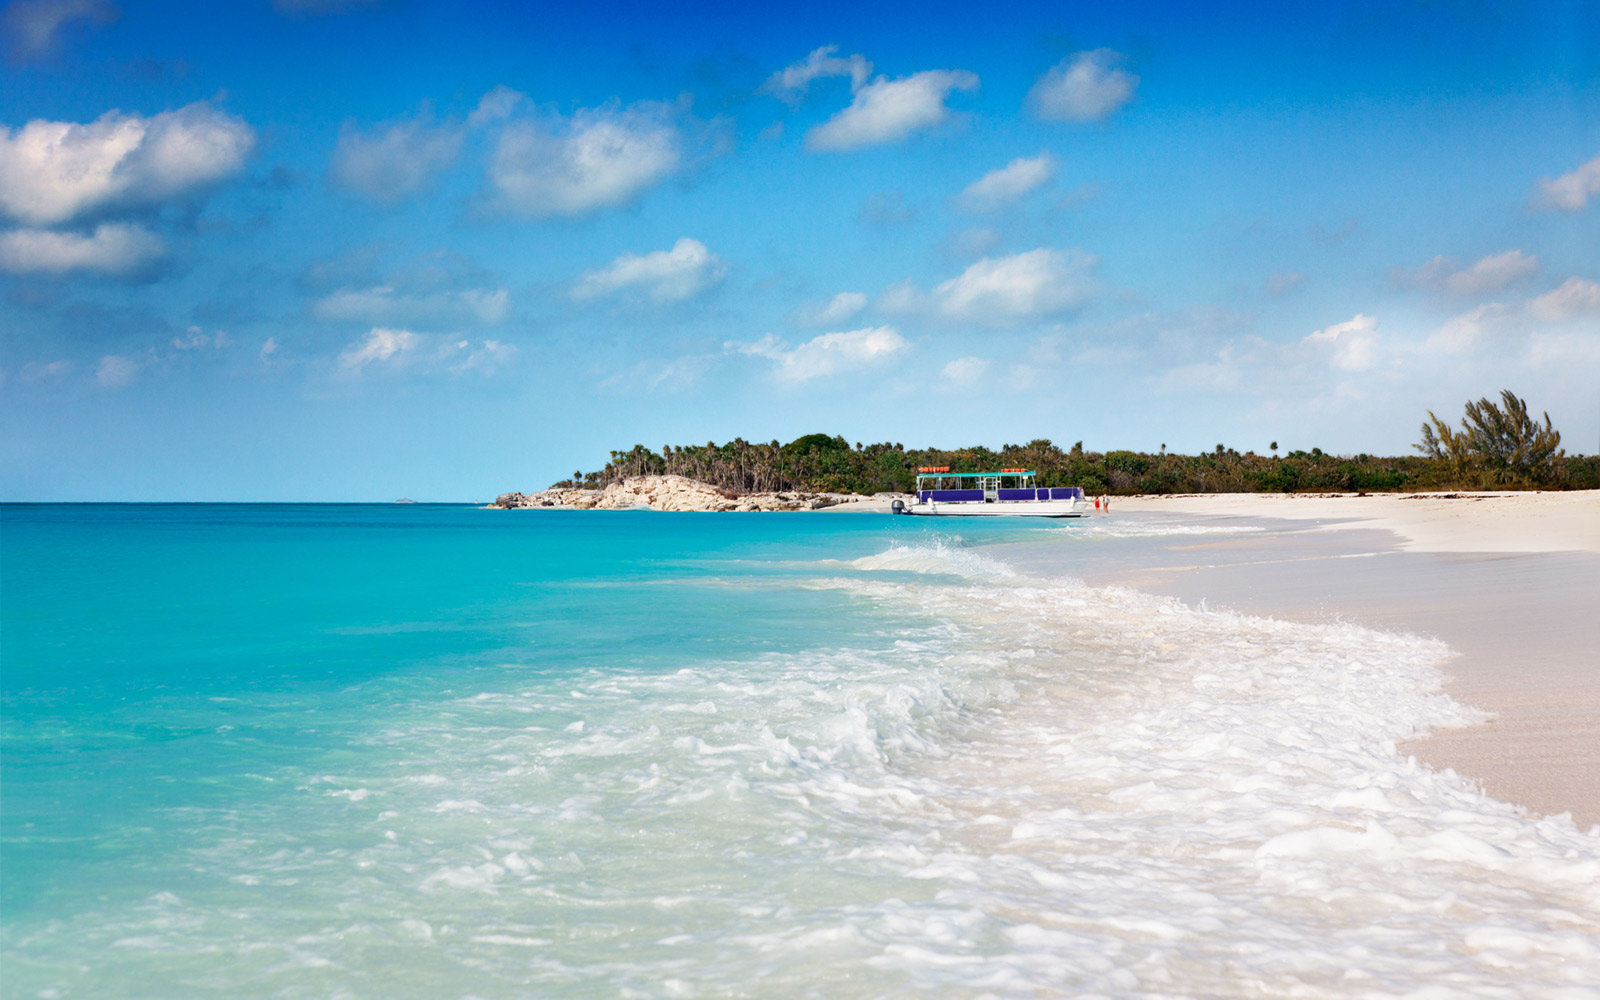 Half Moon Bay, Turks & Caicos Islands